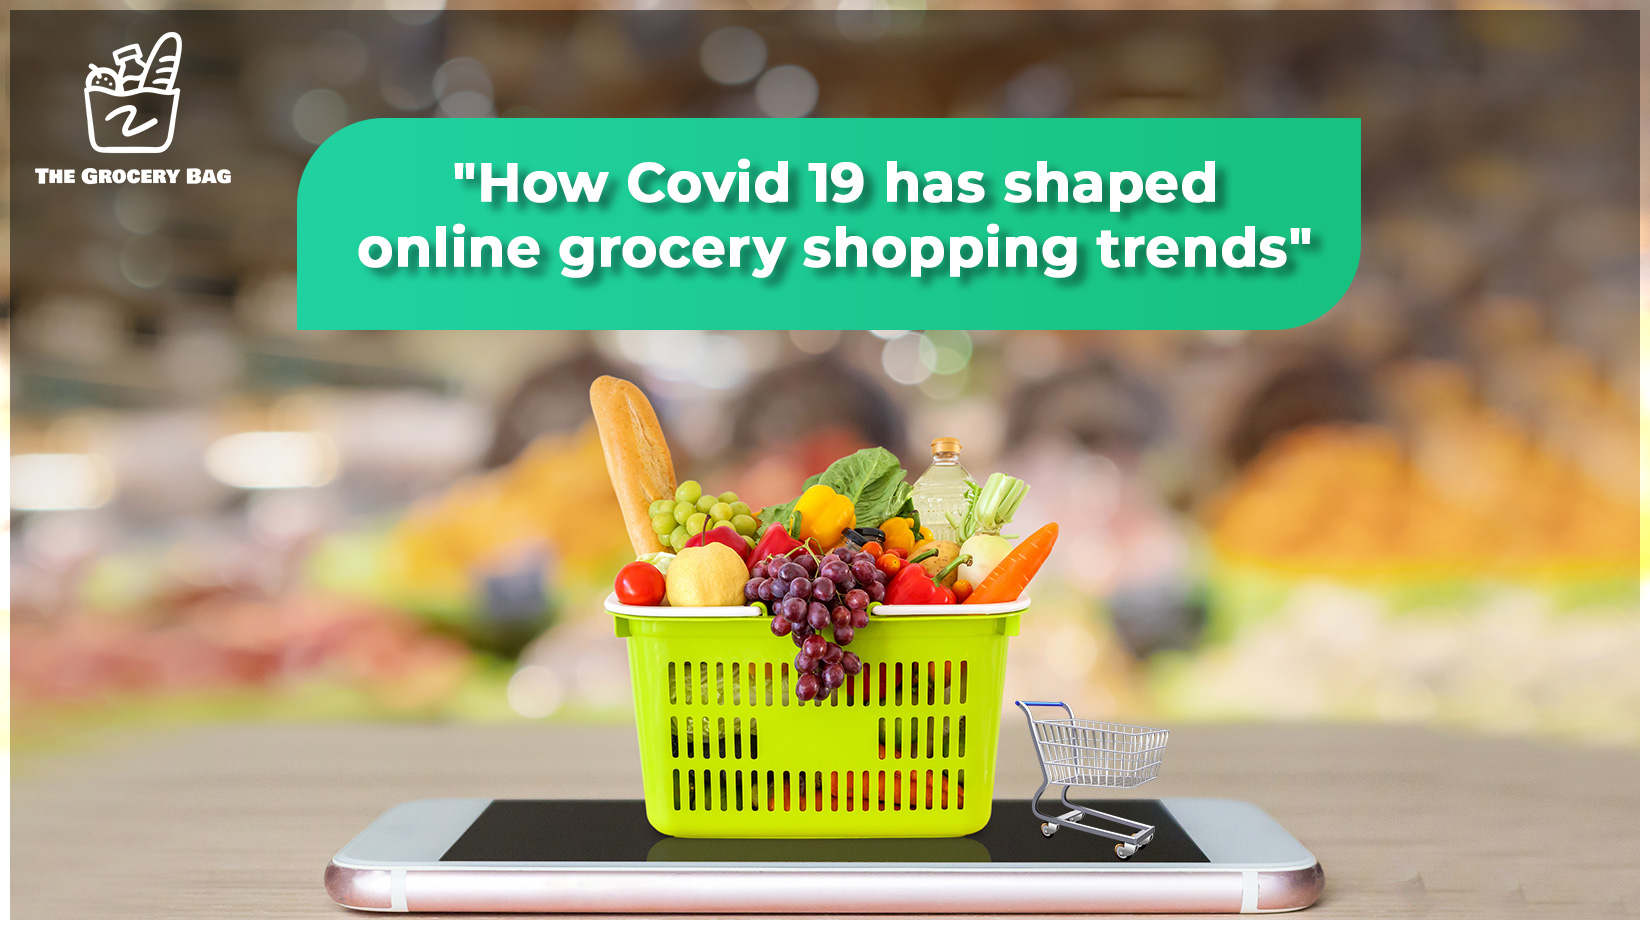 Grocery shopping trends have changed forever, after Covid -19.